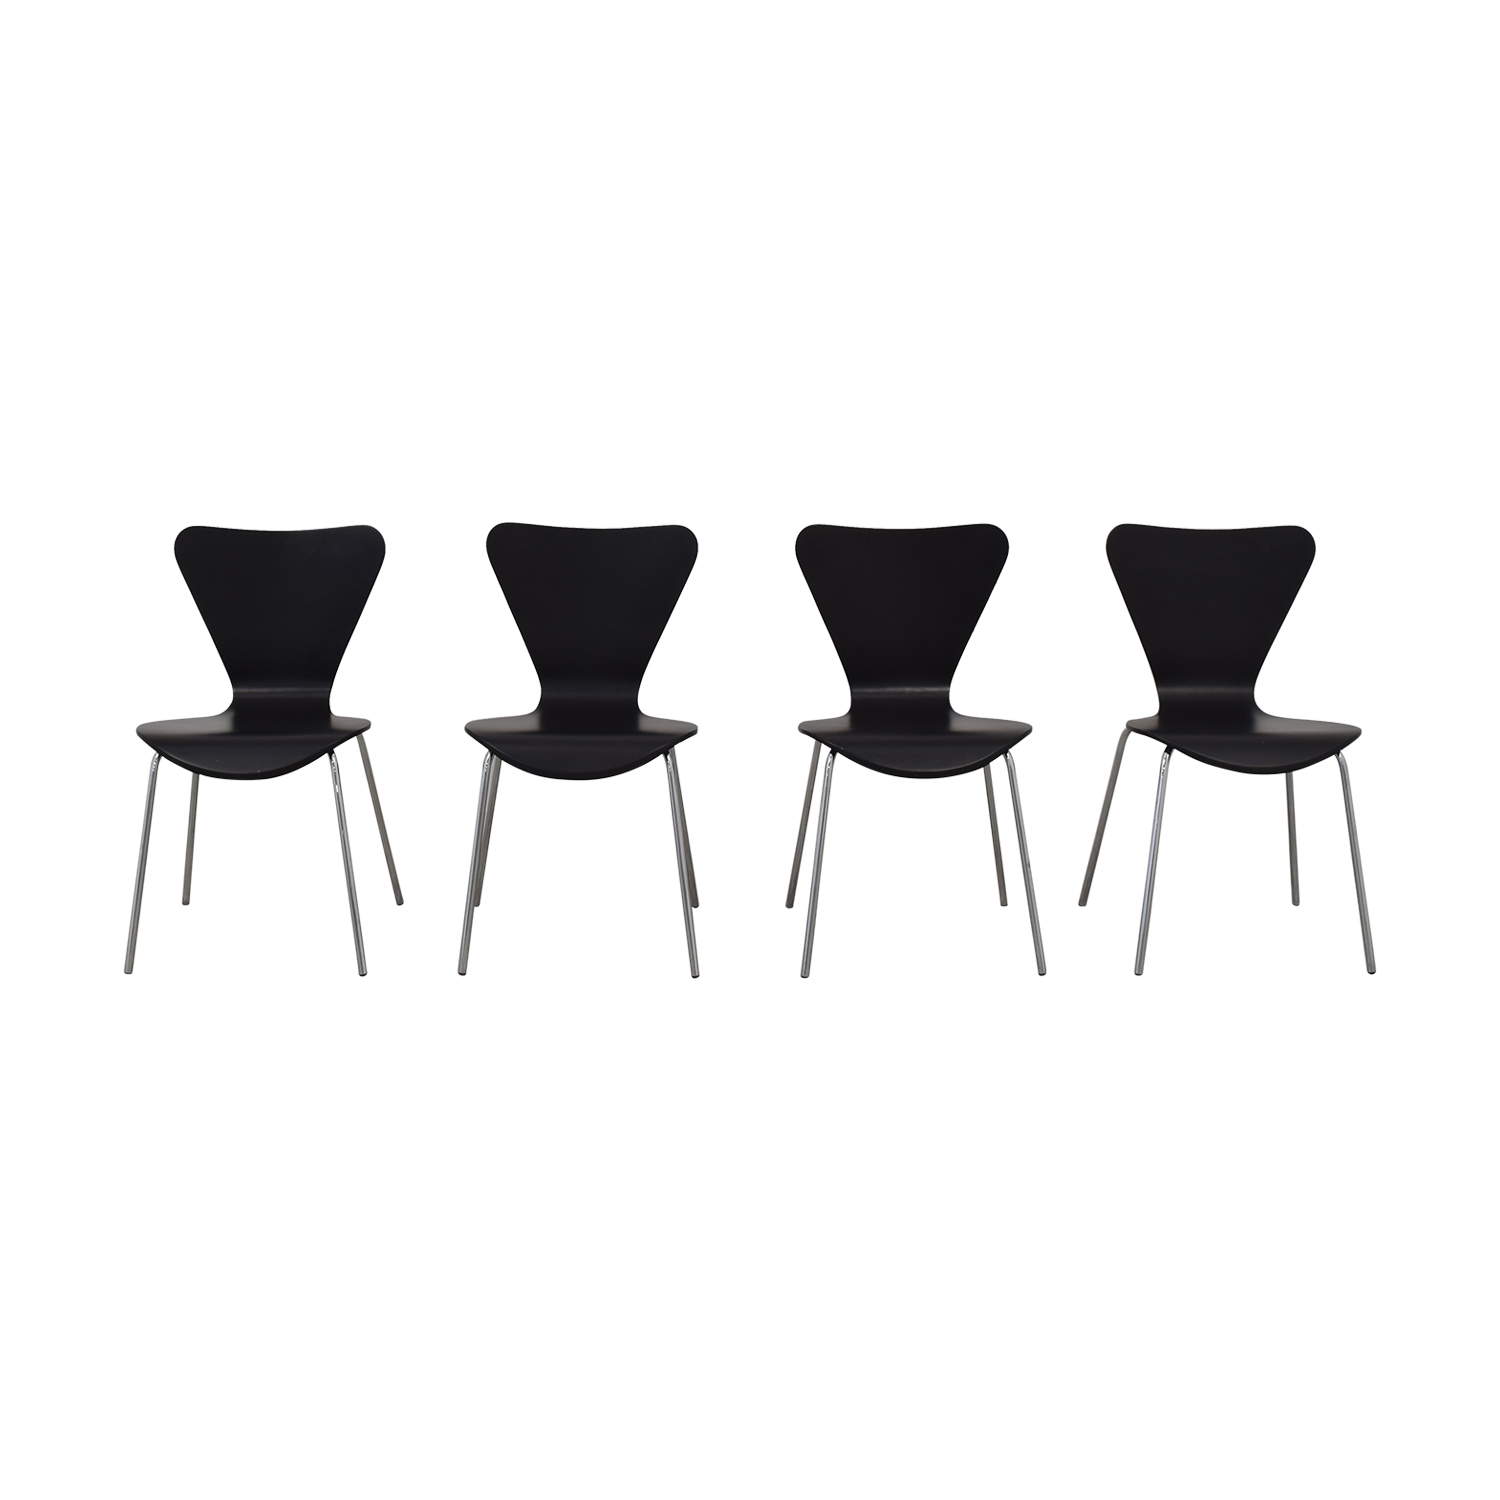 shop Room & Board Black Chairs Room & Board Dining Chairs